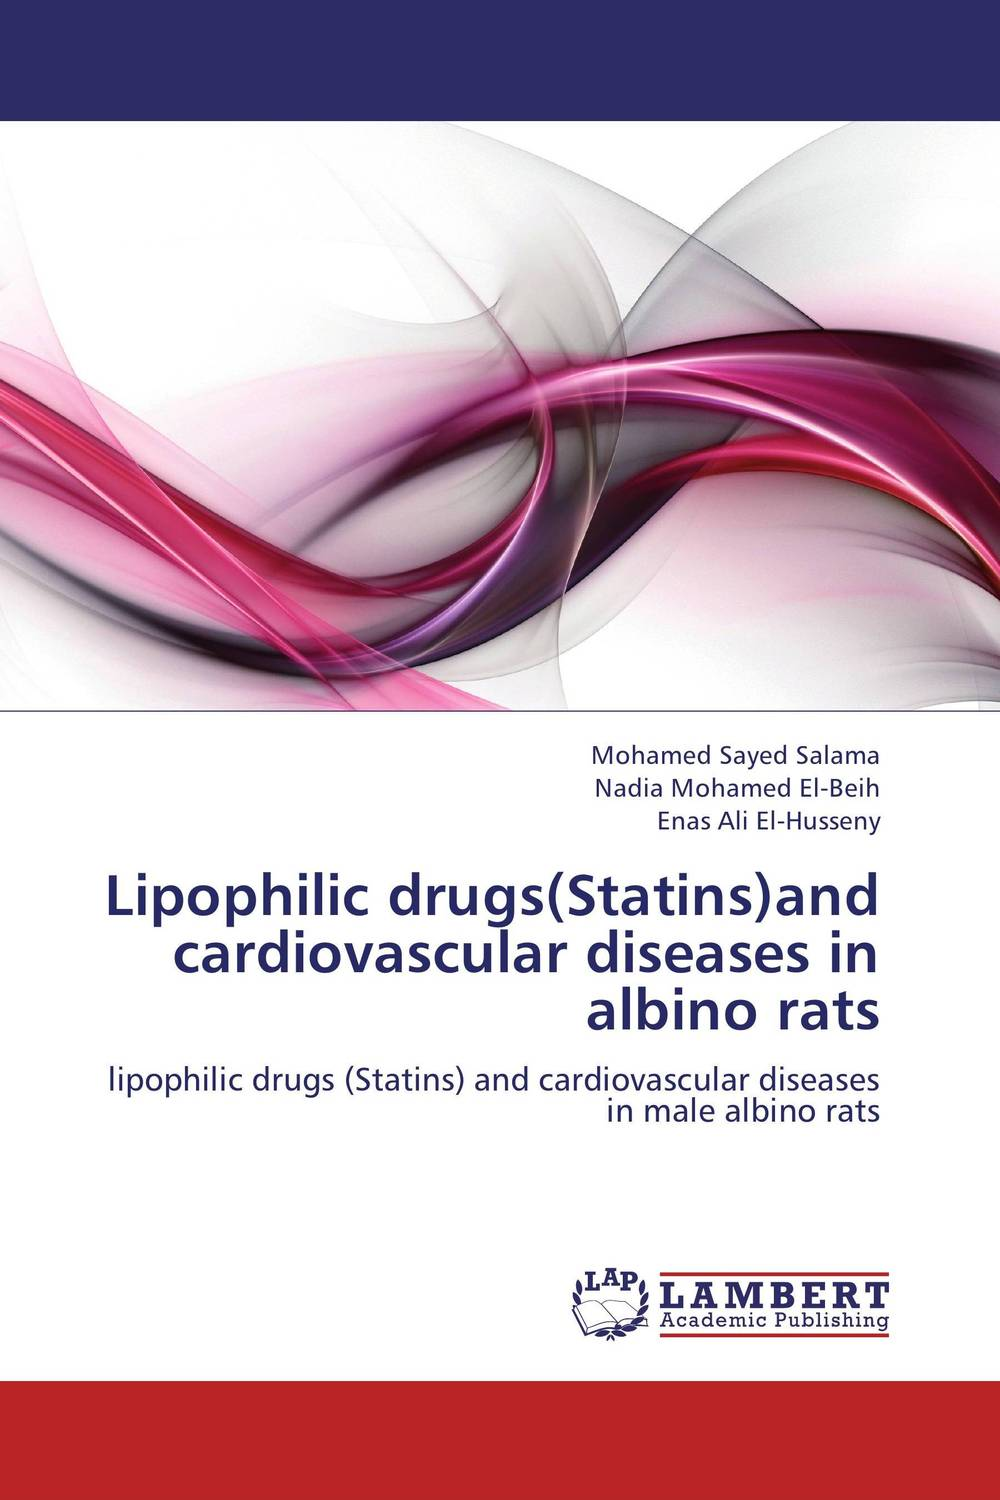 Lipophilic drugs(Statins)and cardiovascular diseases in albino rats fatty liver imaging patterns and pitfalls